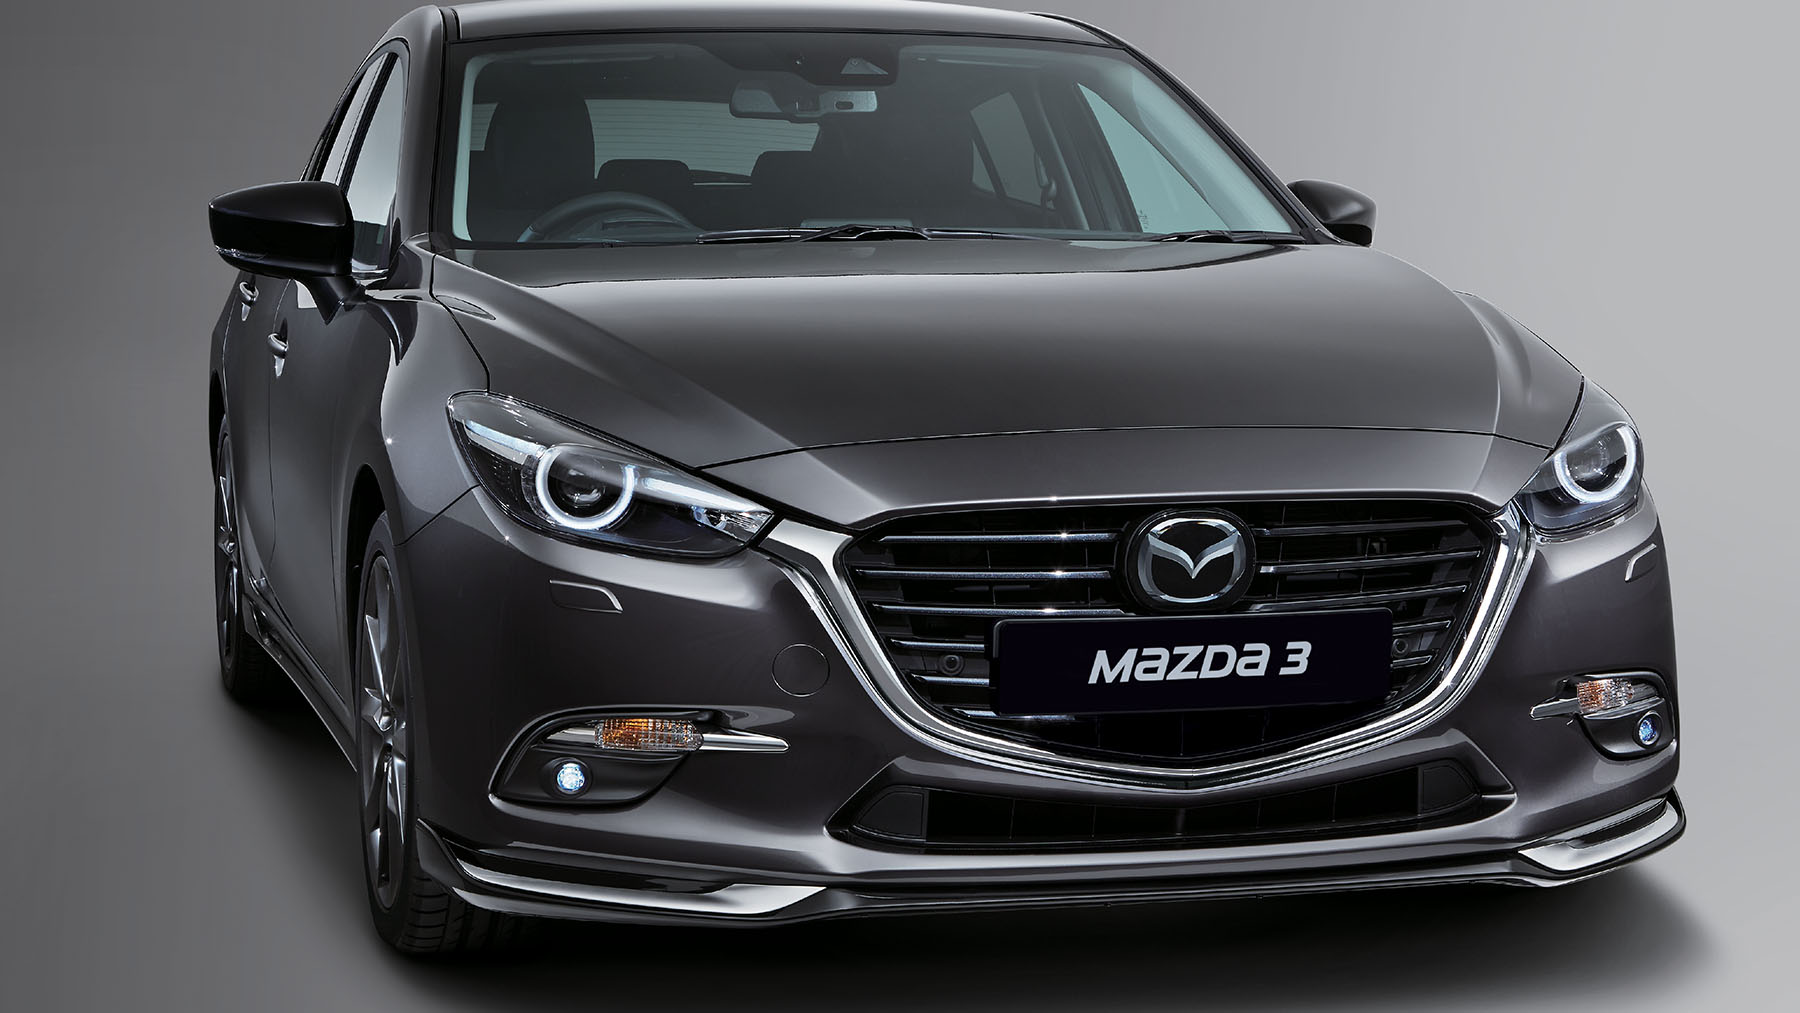 mazda 3 2018 sed n nuevo frente dise o kodo autos actual m xico. Black Bedroom Furniture Sets. Home Design Ideas